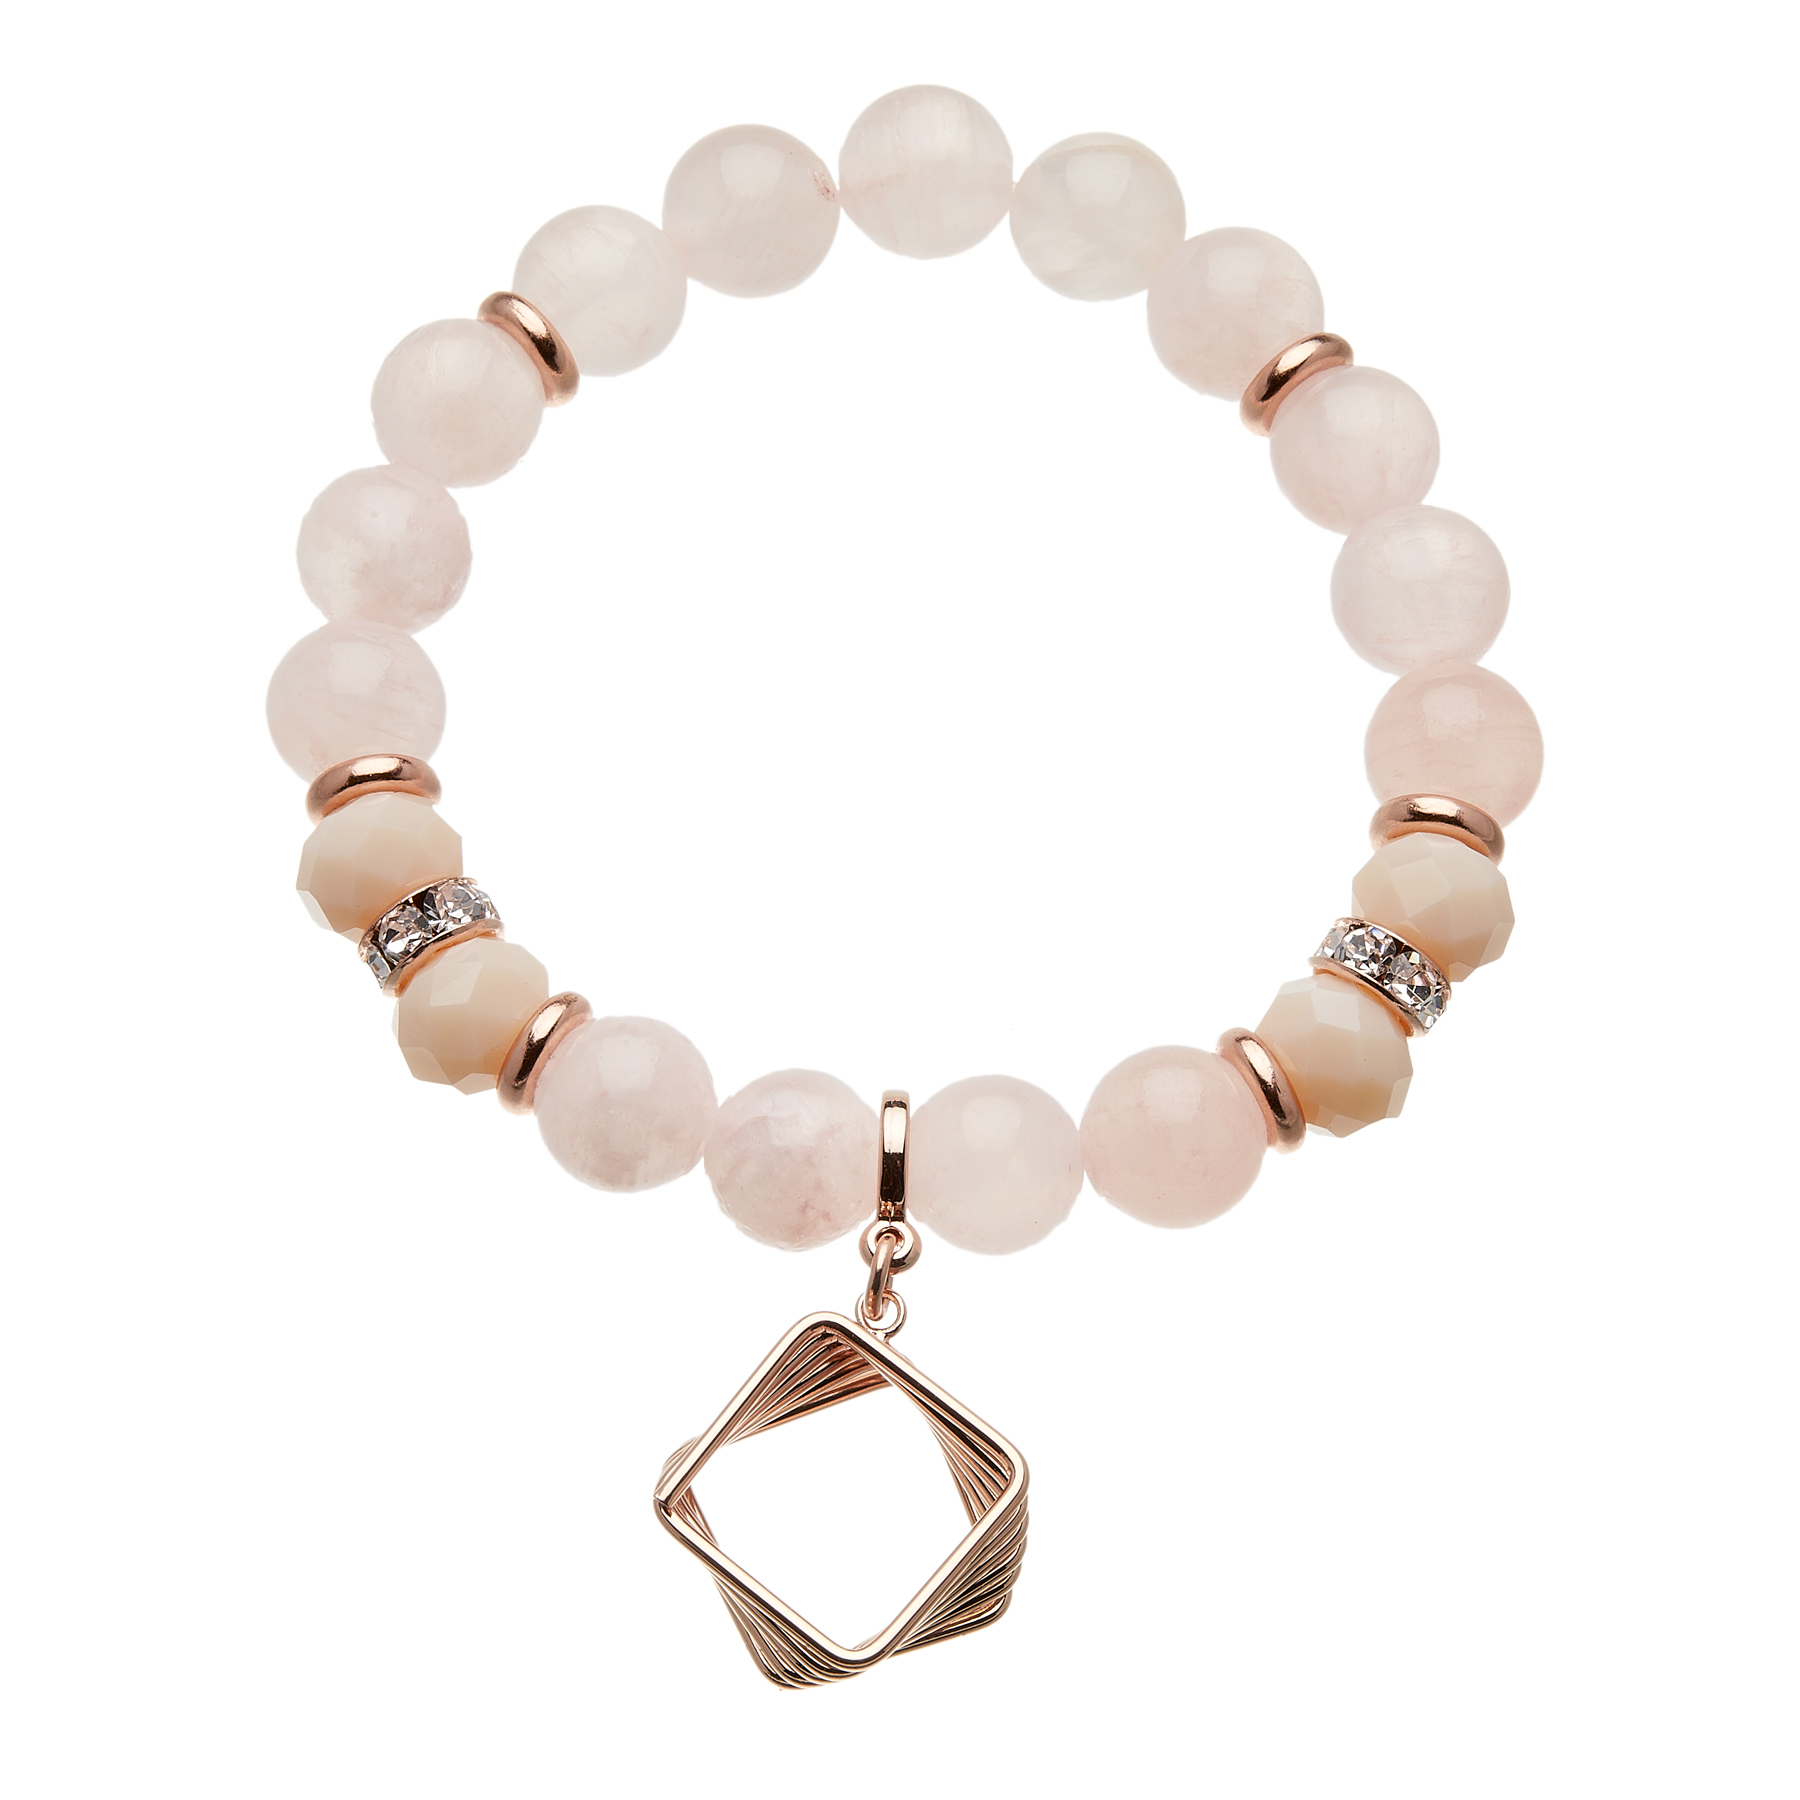 Pink jade beaded Bracelet with a rose gold charm and crystals - Rae P14